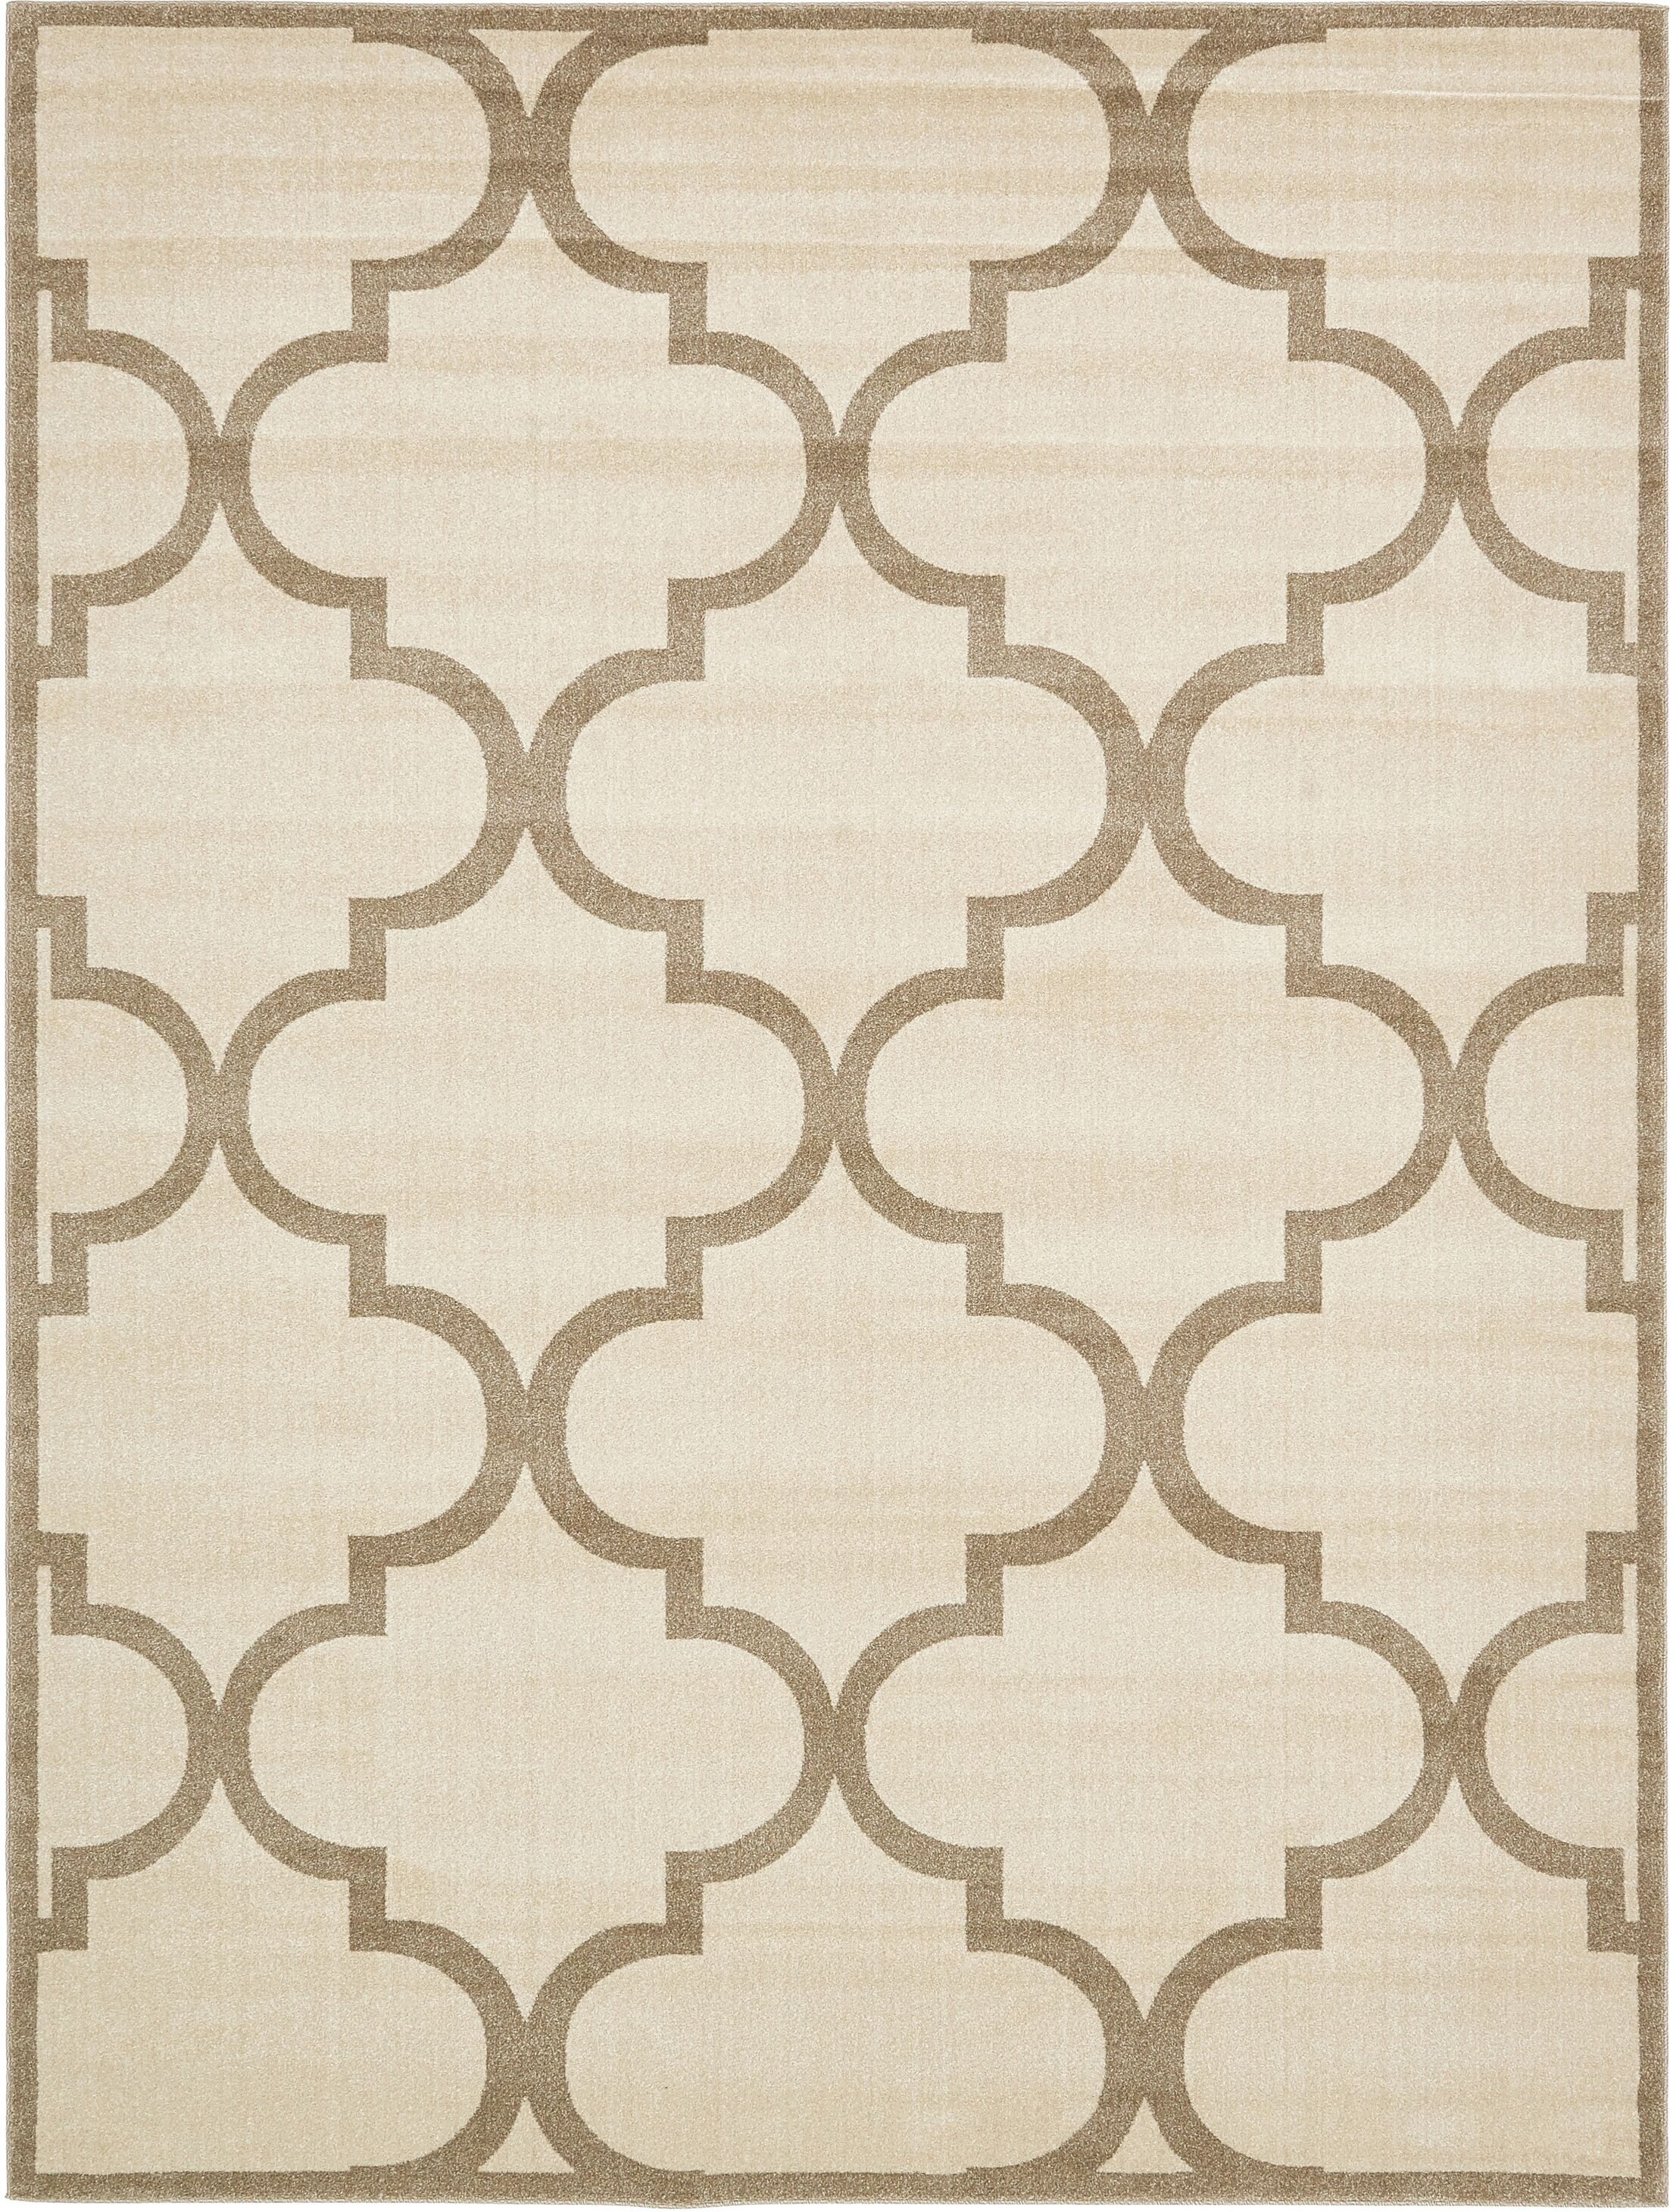 Moore Beige Area Rug Rug Size: Rectangle 9' x 12'